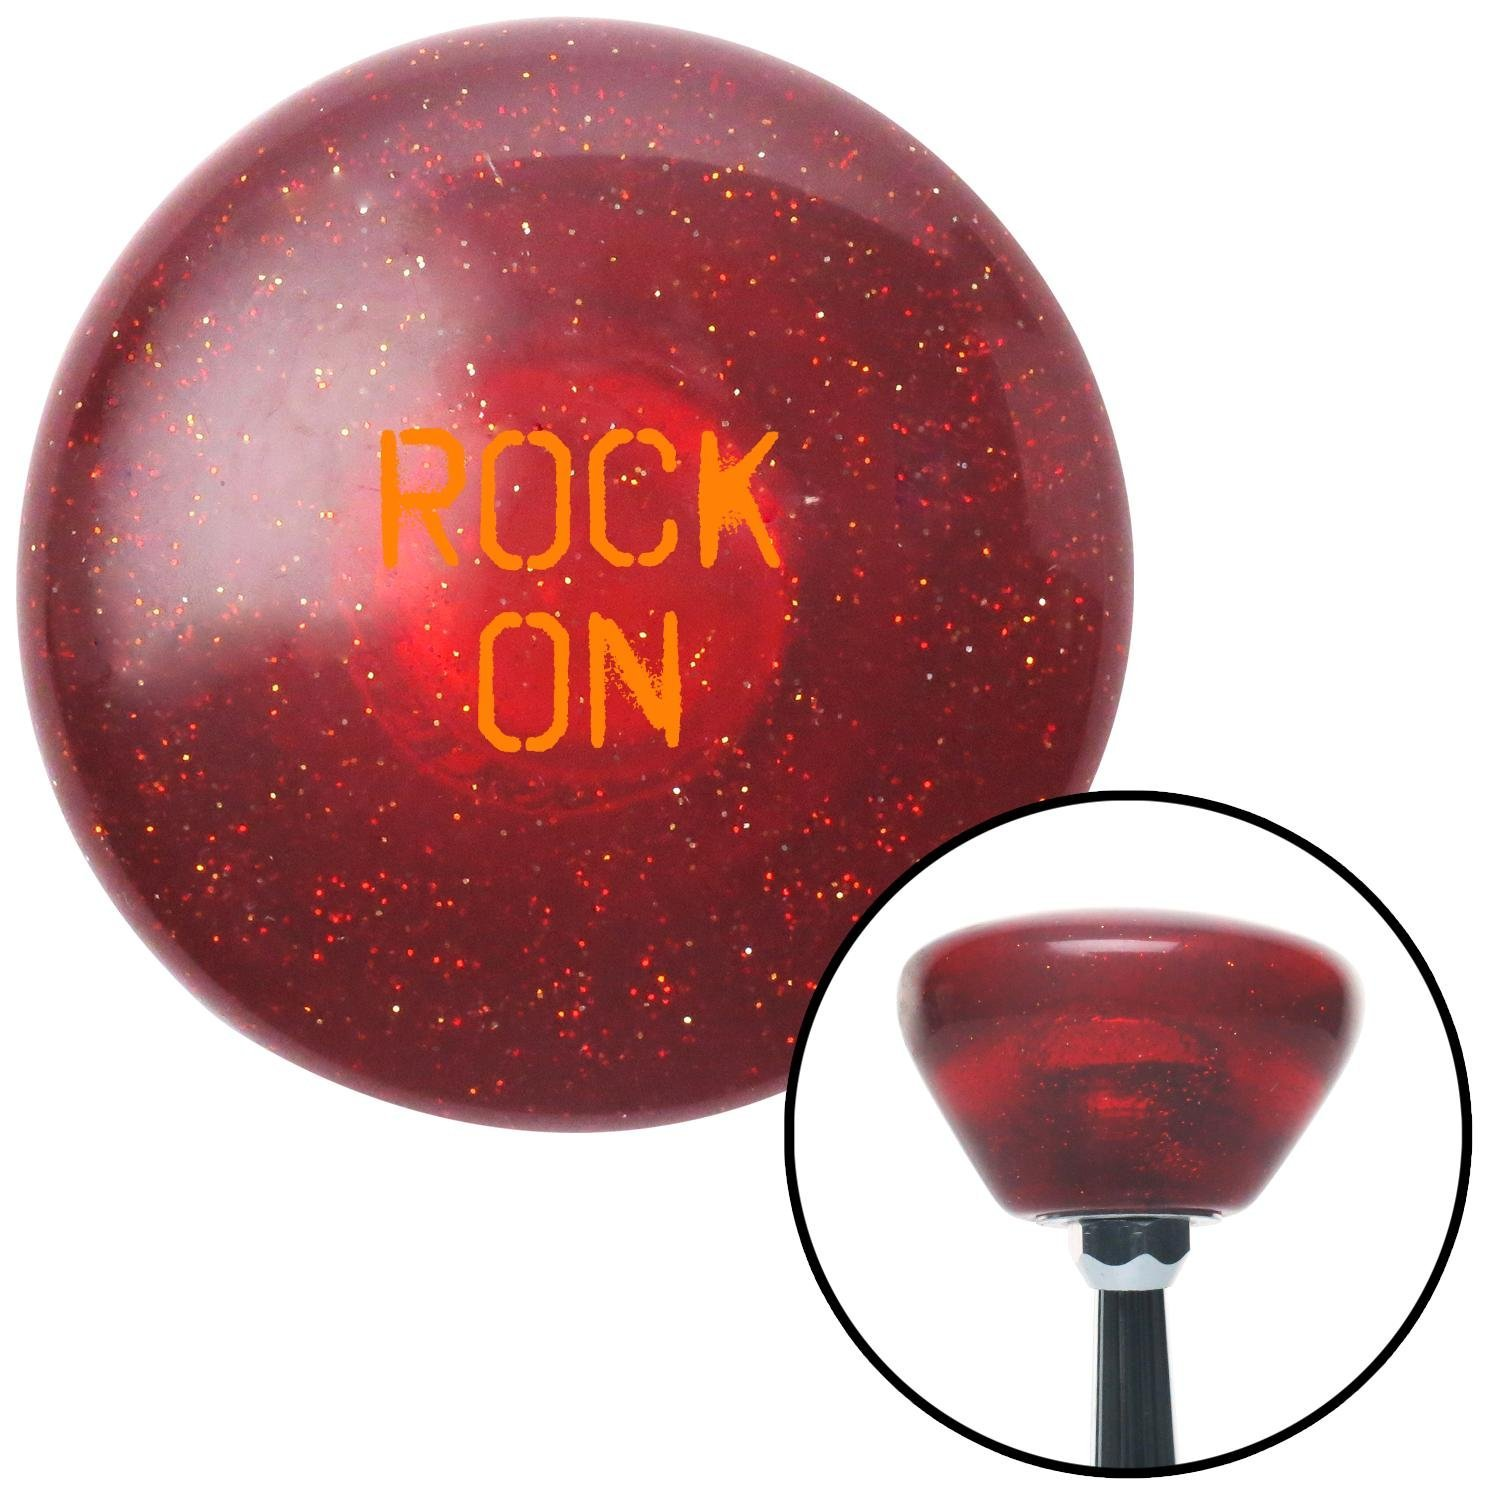 American Shifter 291329 Shift Knob Orange Rock On Red Retro Metal Flake with M16 x 1.5 Insert